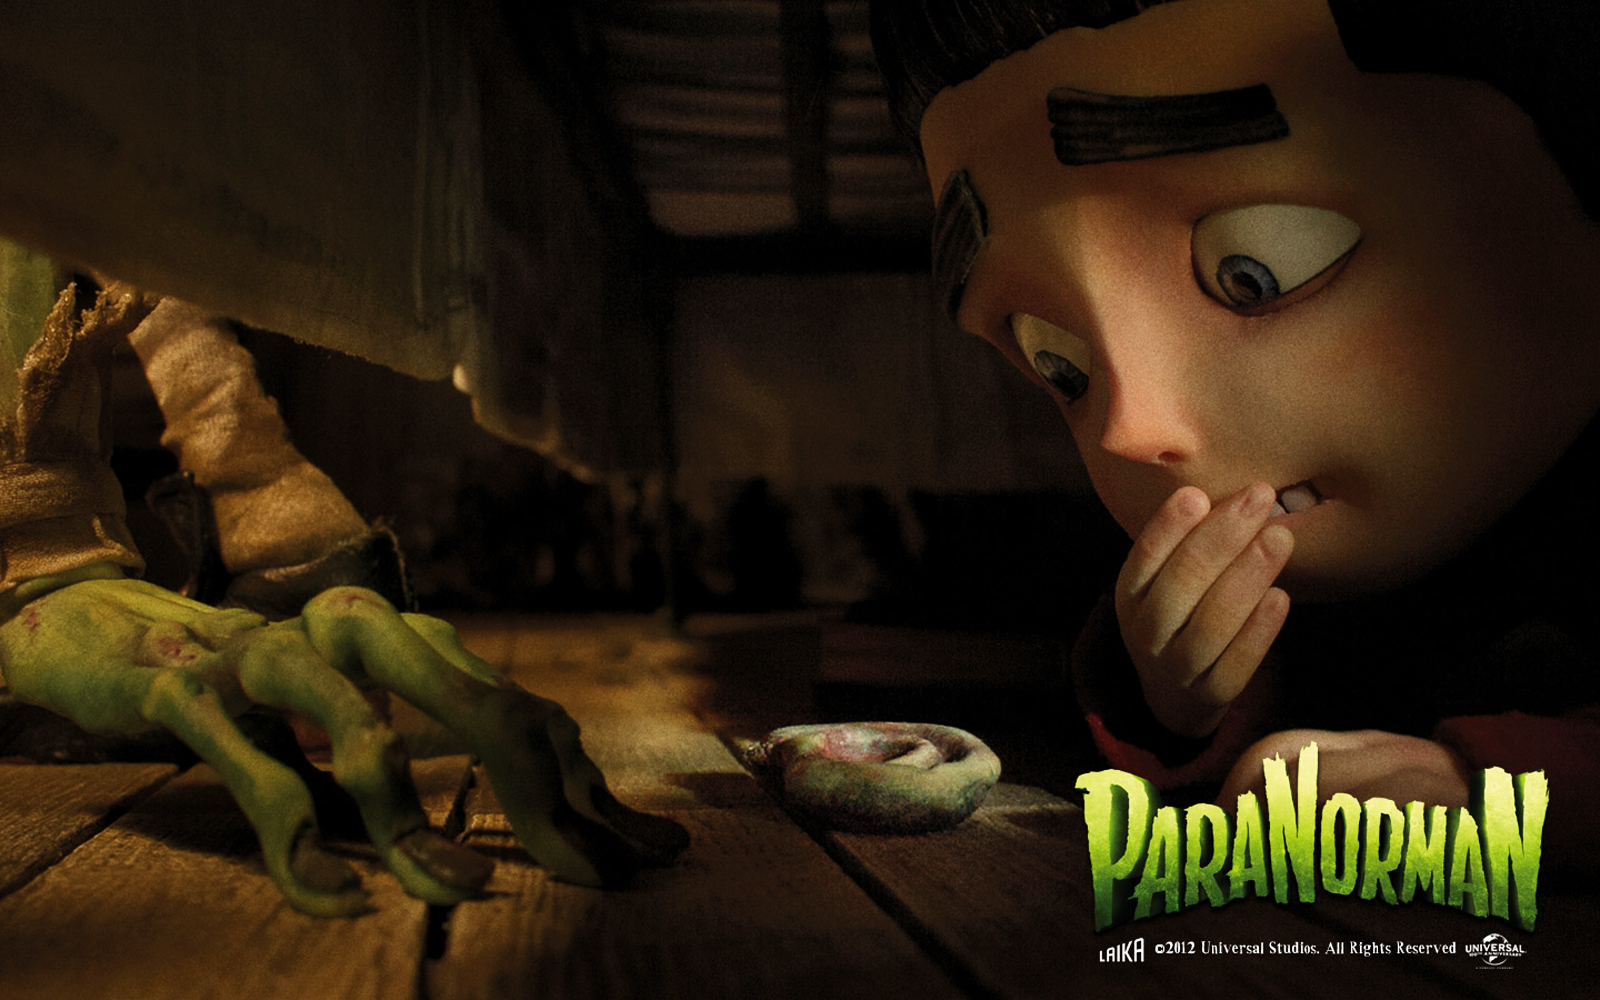 http://2.bp.blogspot.com/-Y9fSkl6p74w/UGaeyyOqWSI/AAAAAAAAE54/0O-CBKCd6M0/s1600/Paranorman-2012-Animation-Movie-HD-Wallpaper--Vvallpaper.Net.jpg